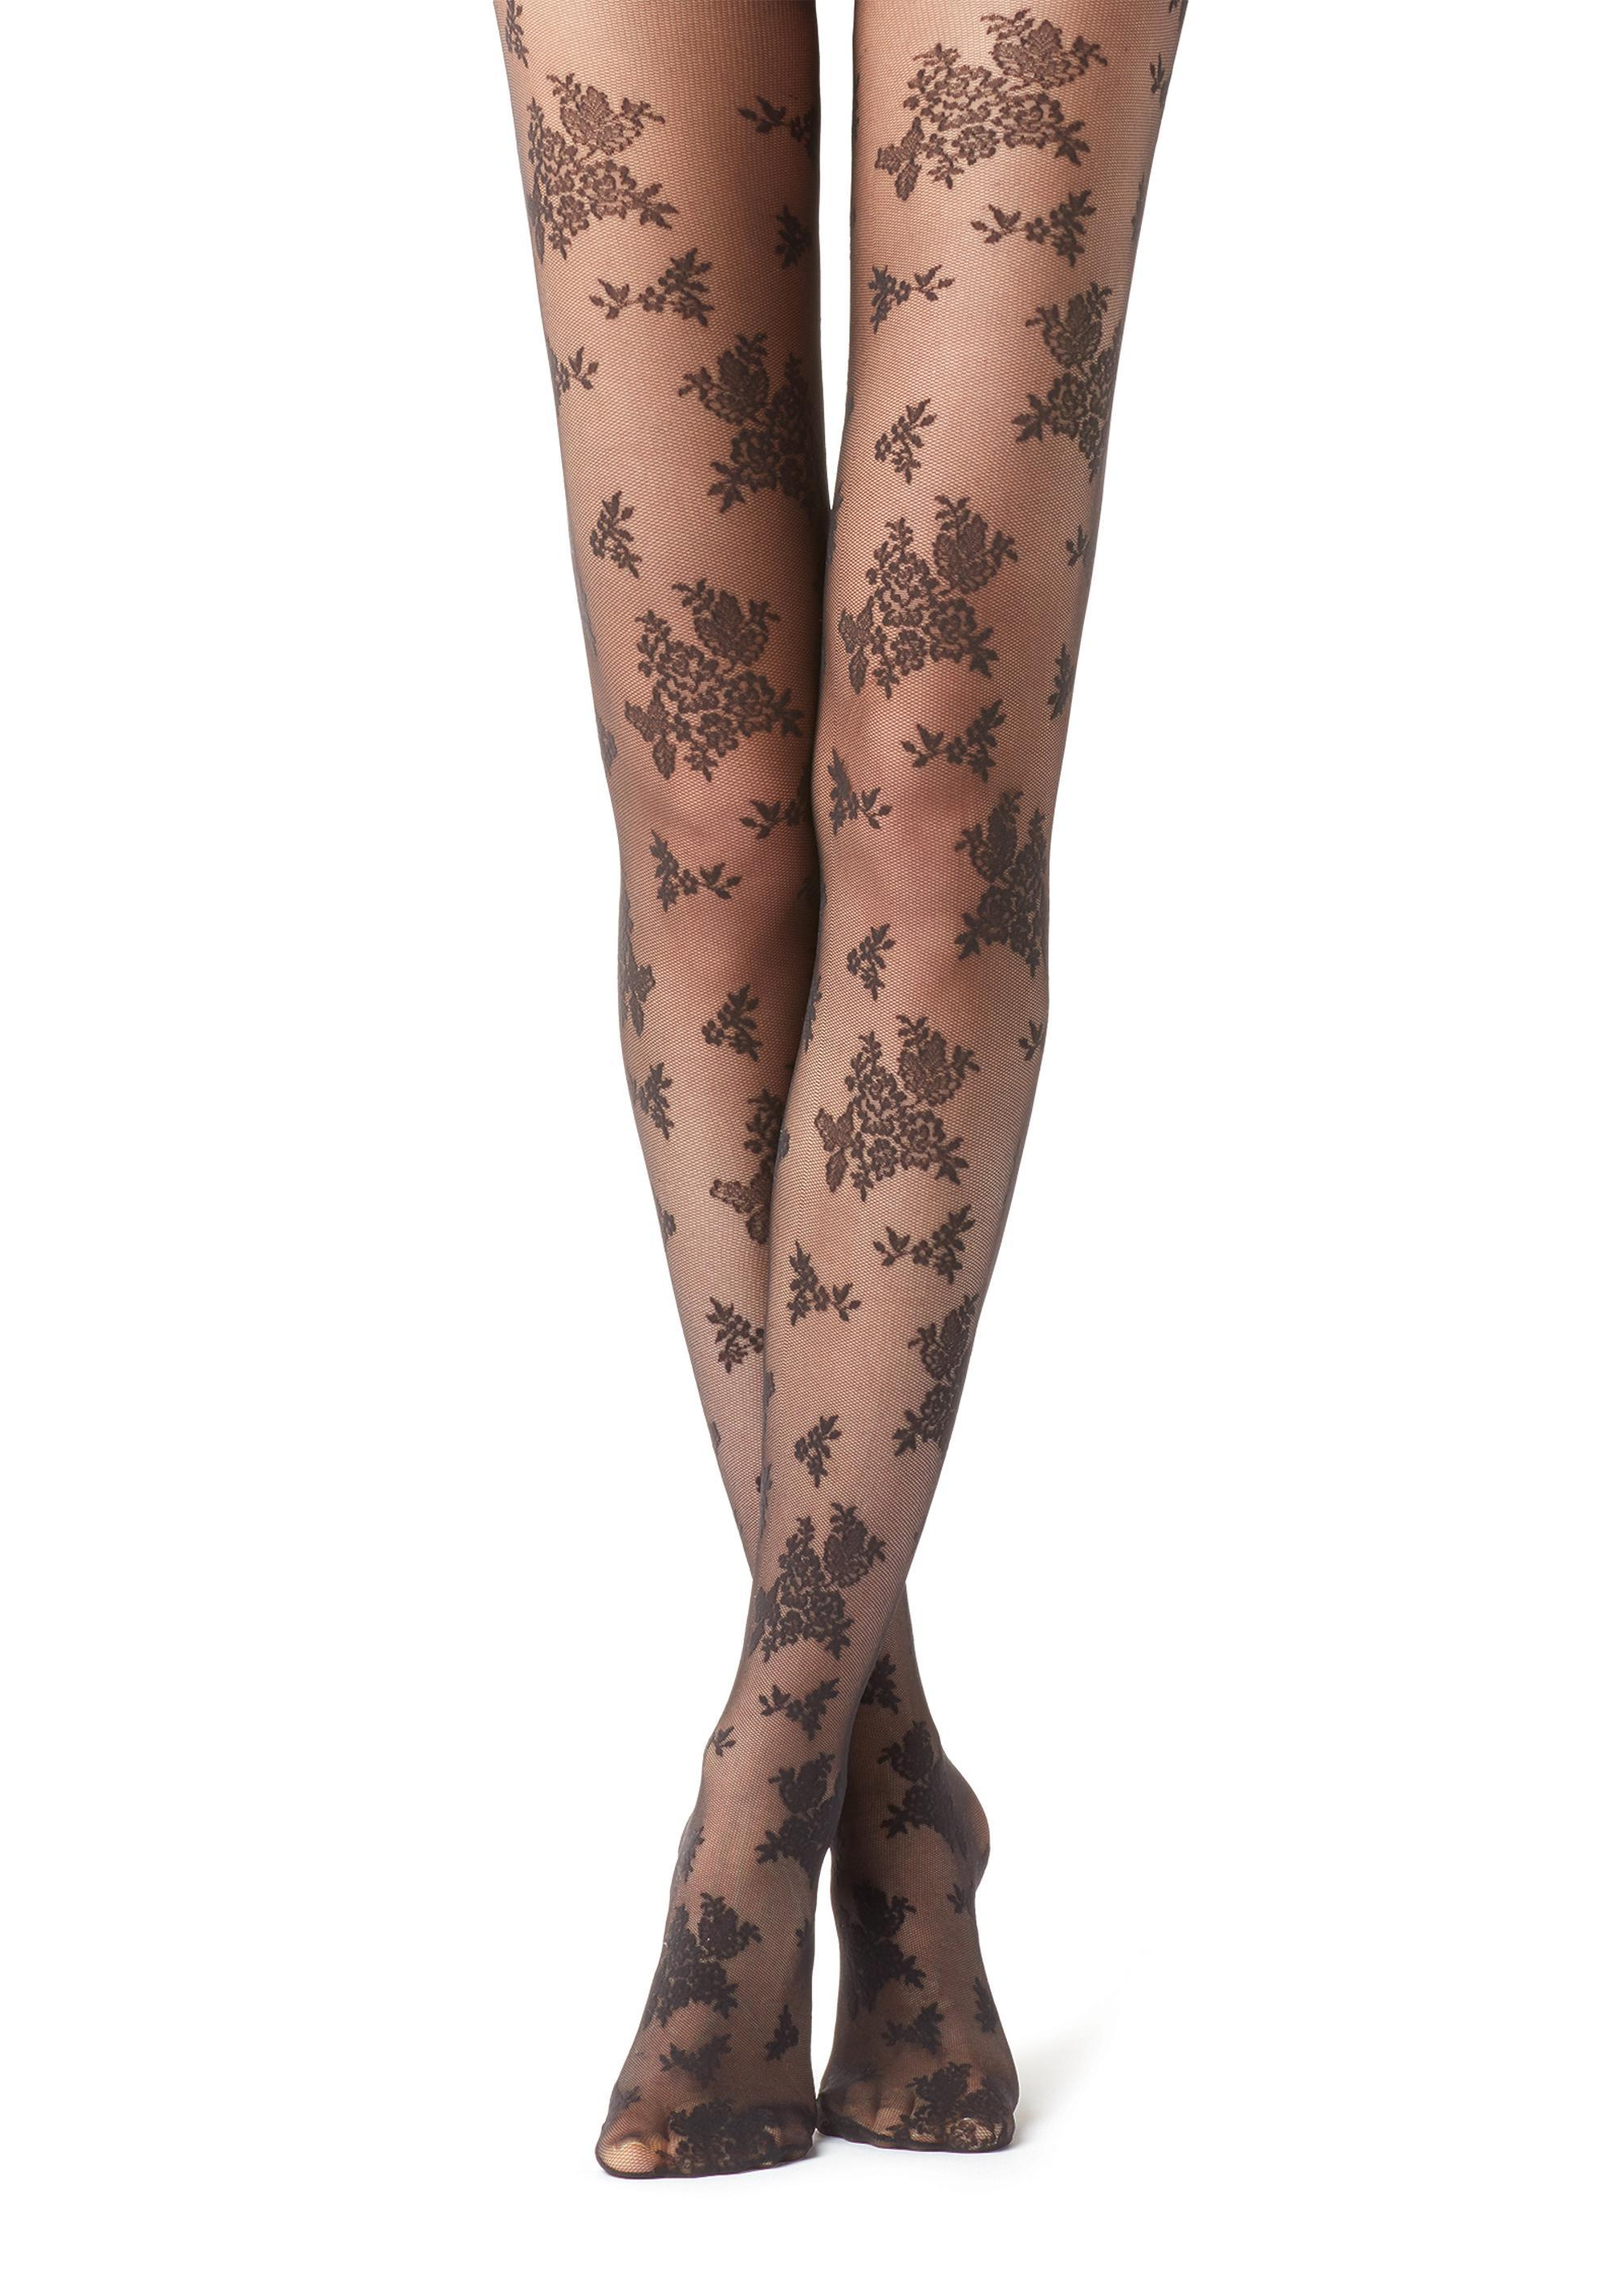 Collants Tulle Floral - Calzedonia b1249d5d0b5